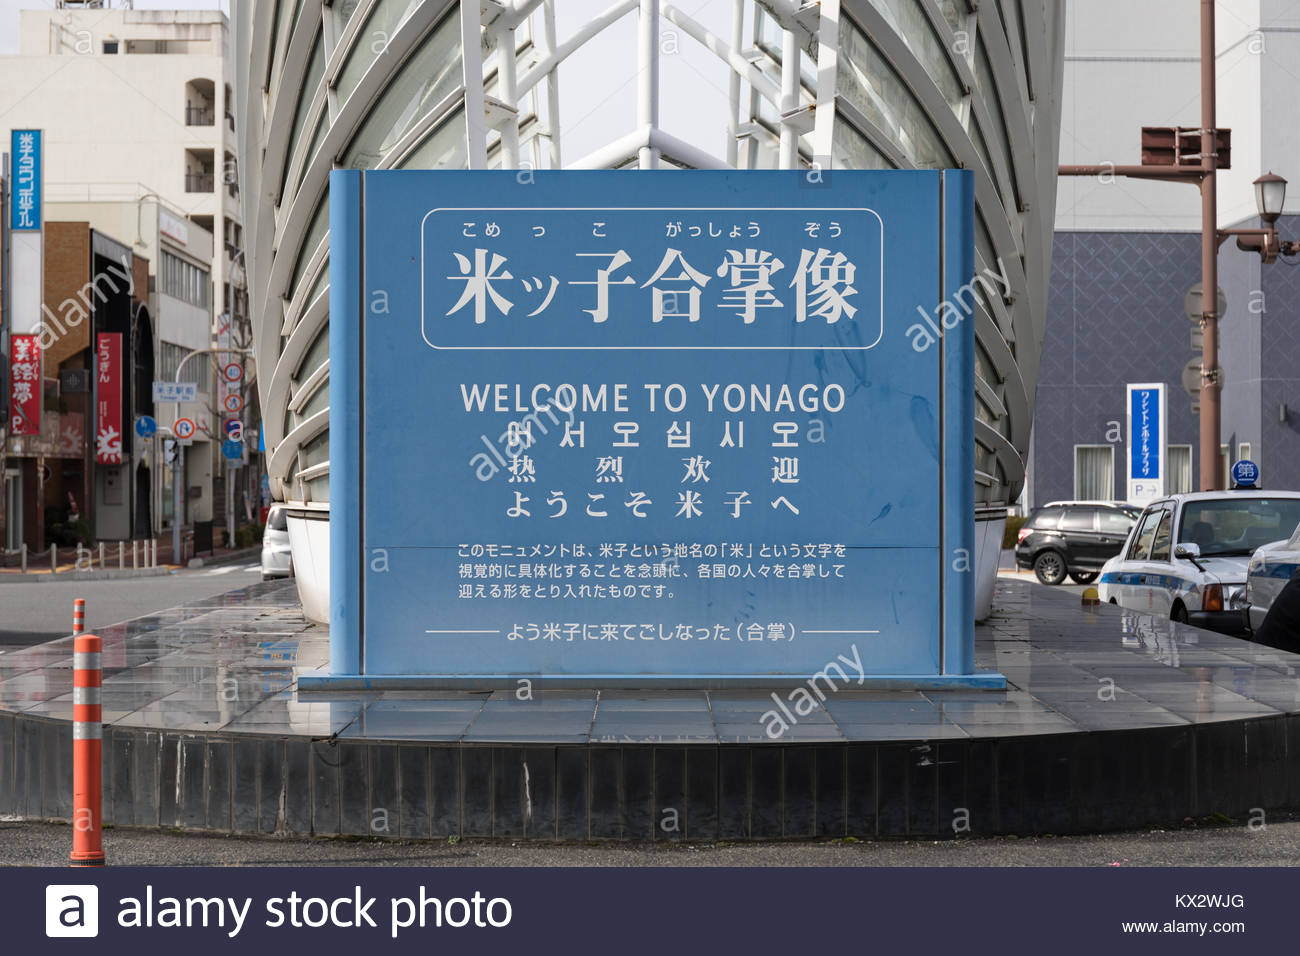 welcome-to-yonago-yonago-station-tottori-prefecture-japan-KX2WJG.jpg